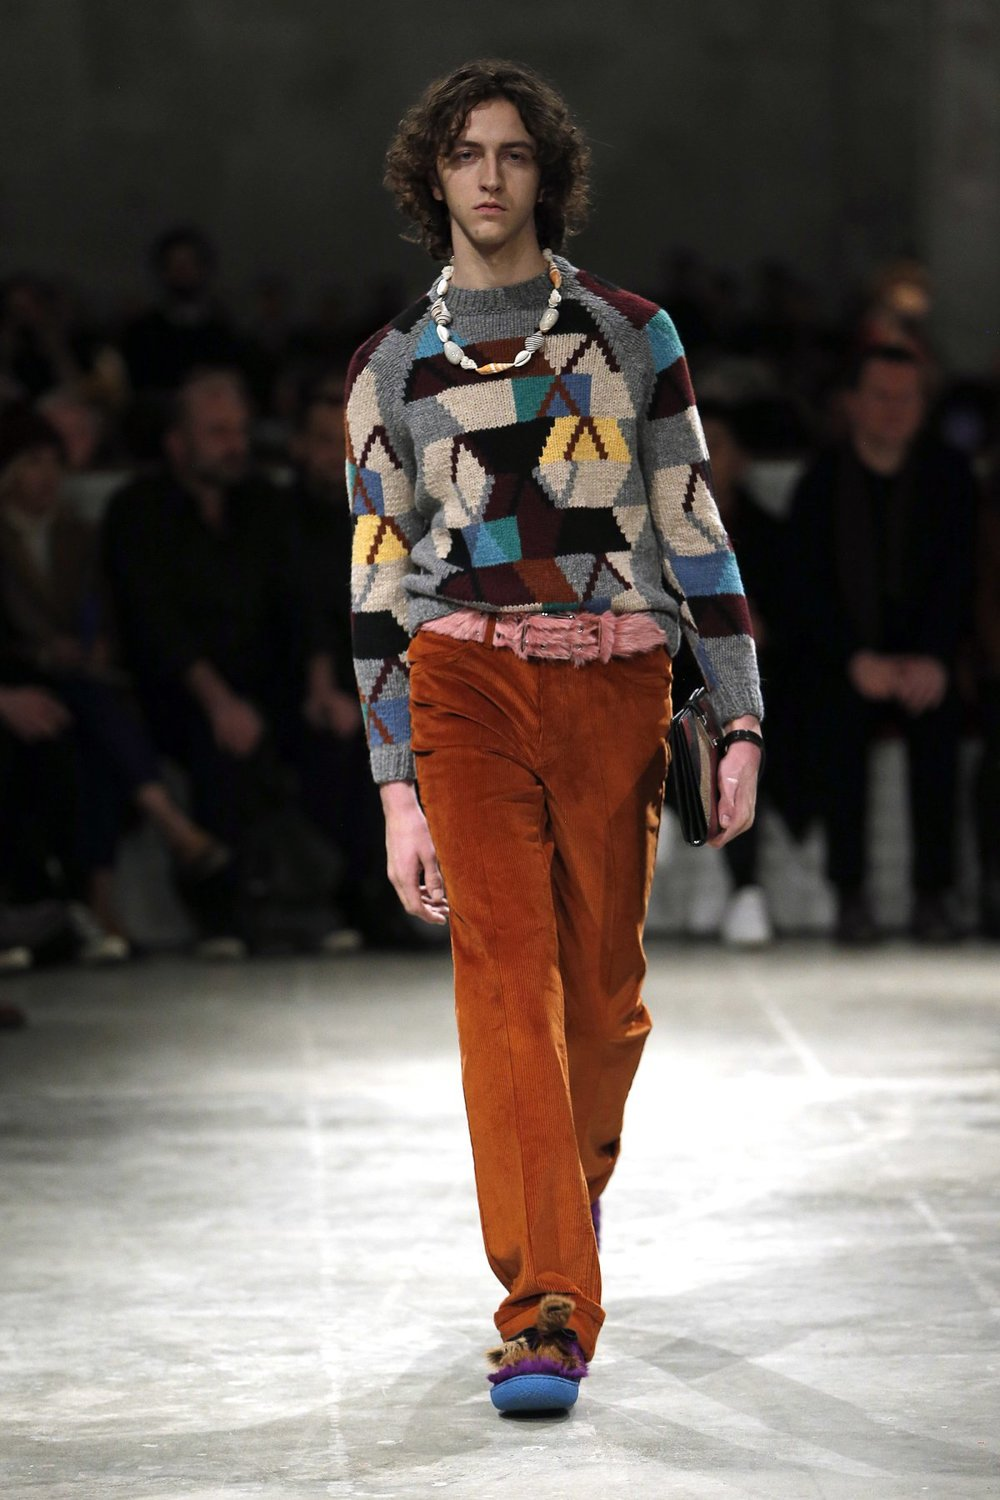 prada_look_17_2017_aw_mens.jpeg